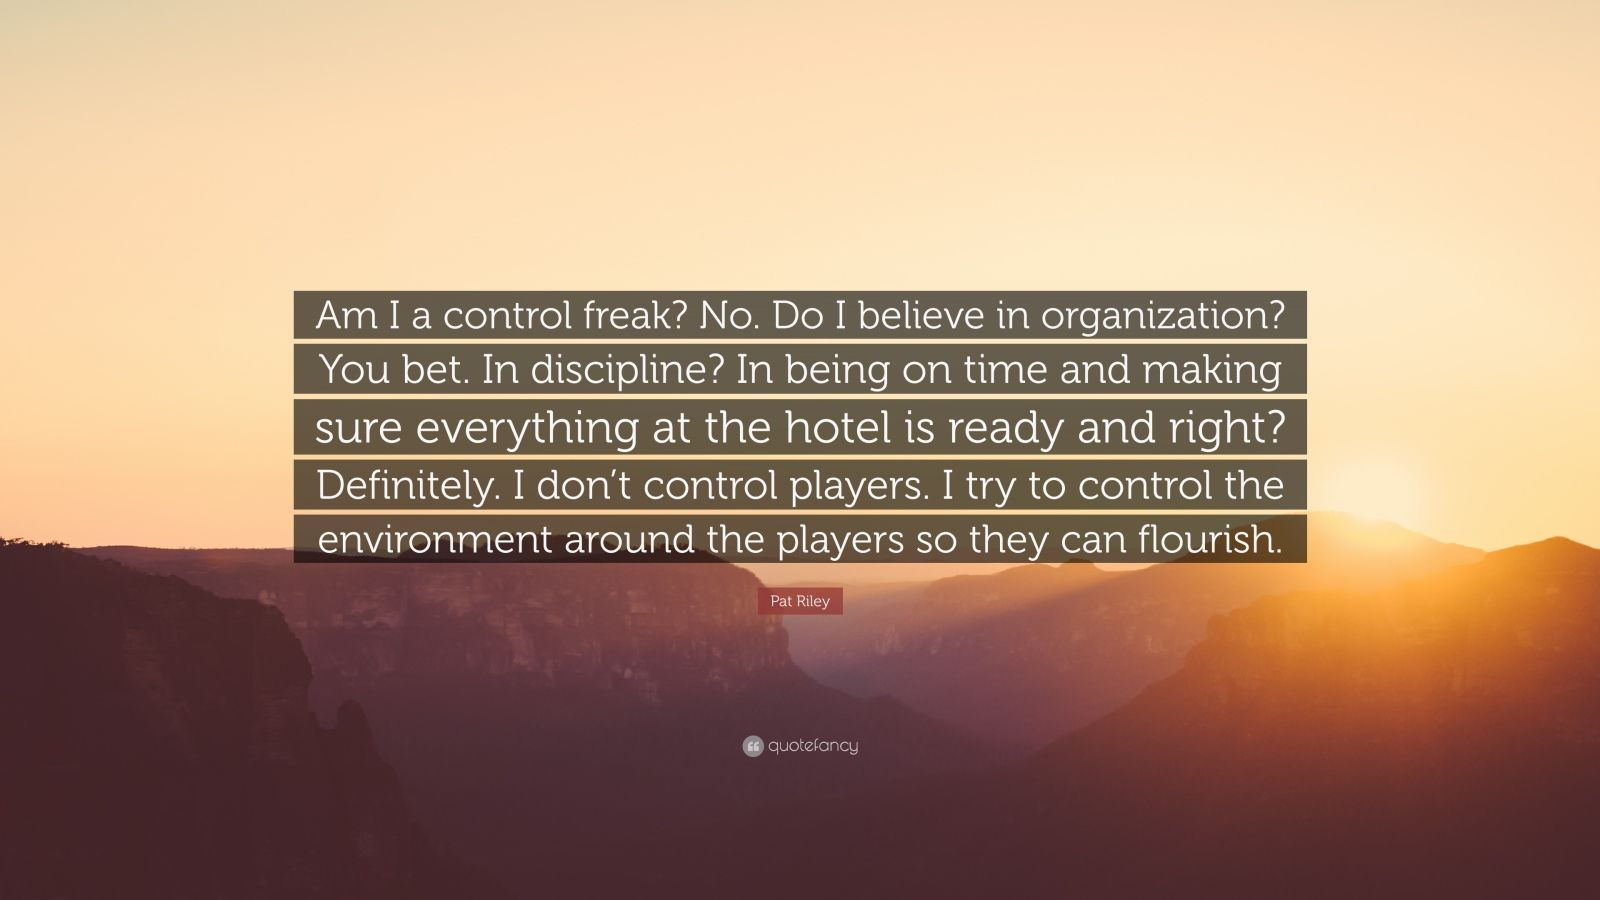 "Pat Riley Quote: ""Am I a control freak? No. Do I believe in organization? You bet. In discipline? In being on time and making sure everything at the hotel is ready and right? Definitely. I don't control players. I try to control the environment around the players so they can flourish."""